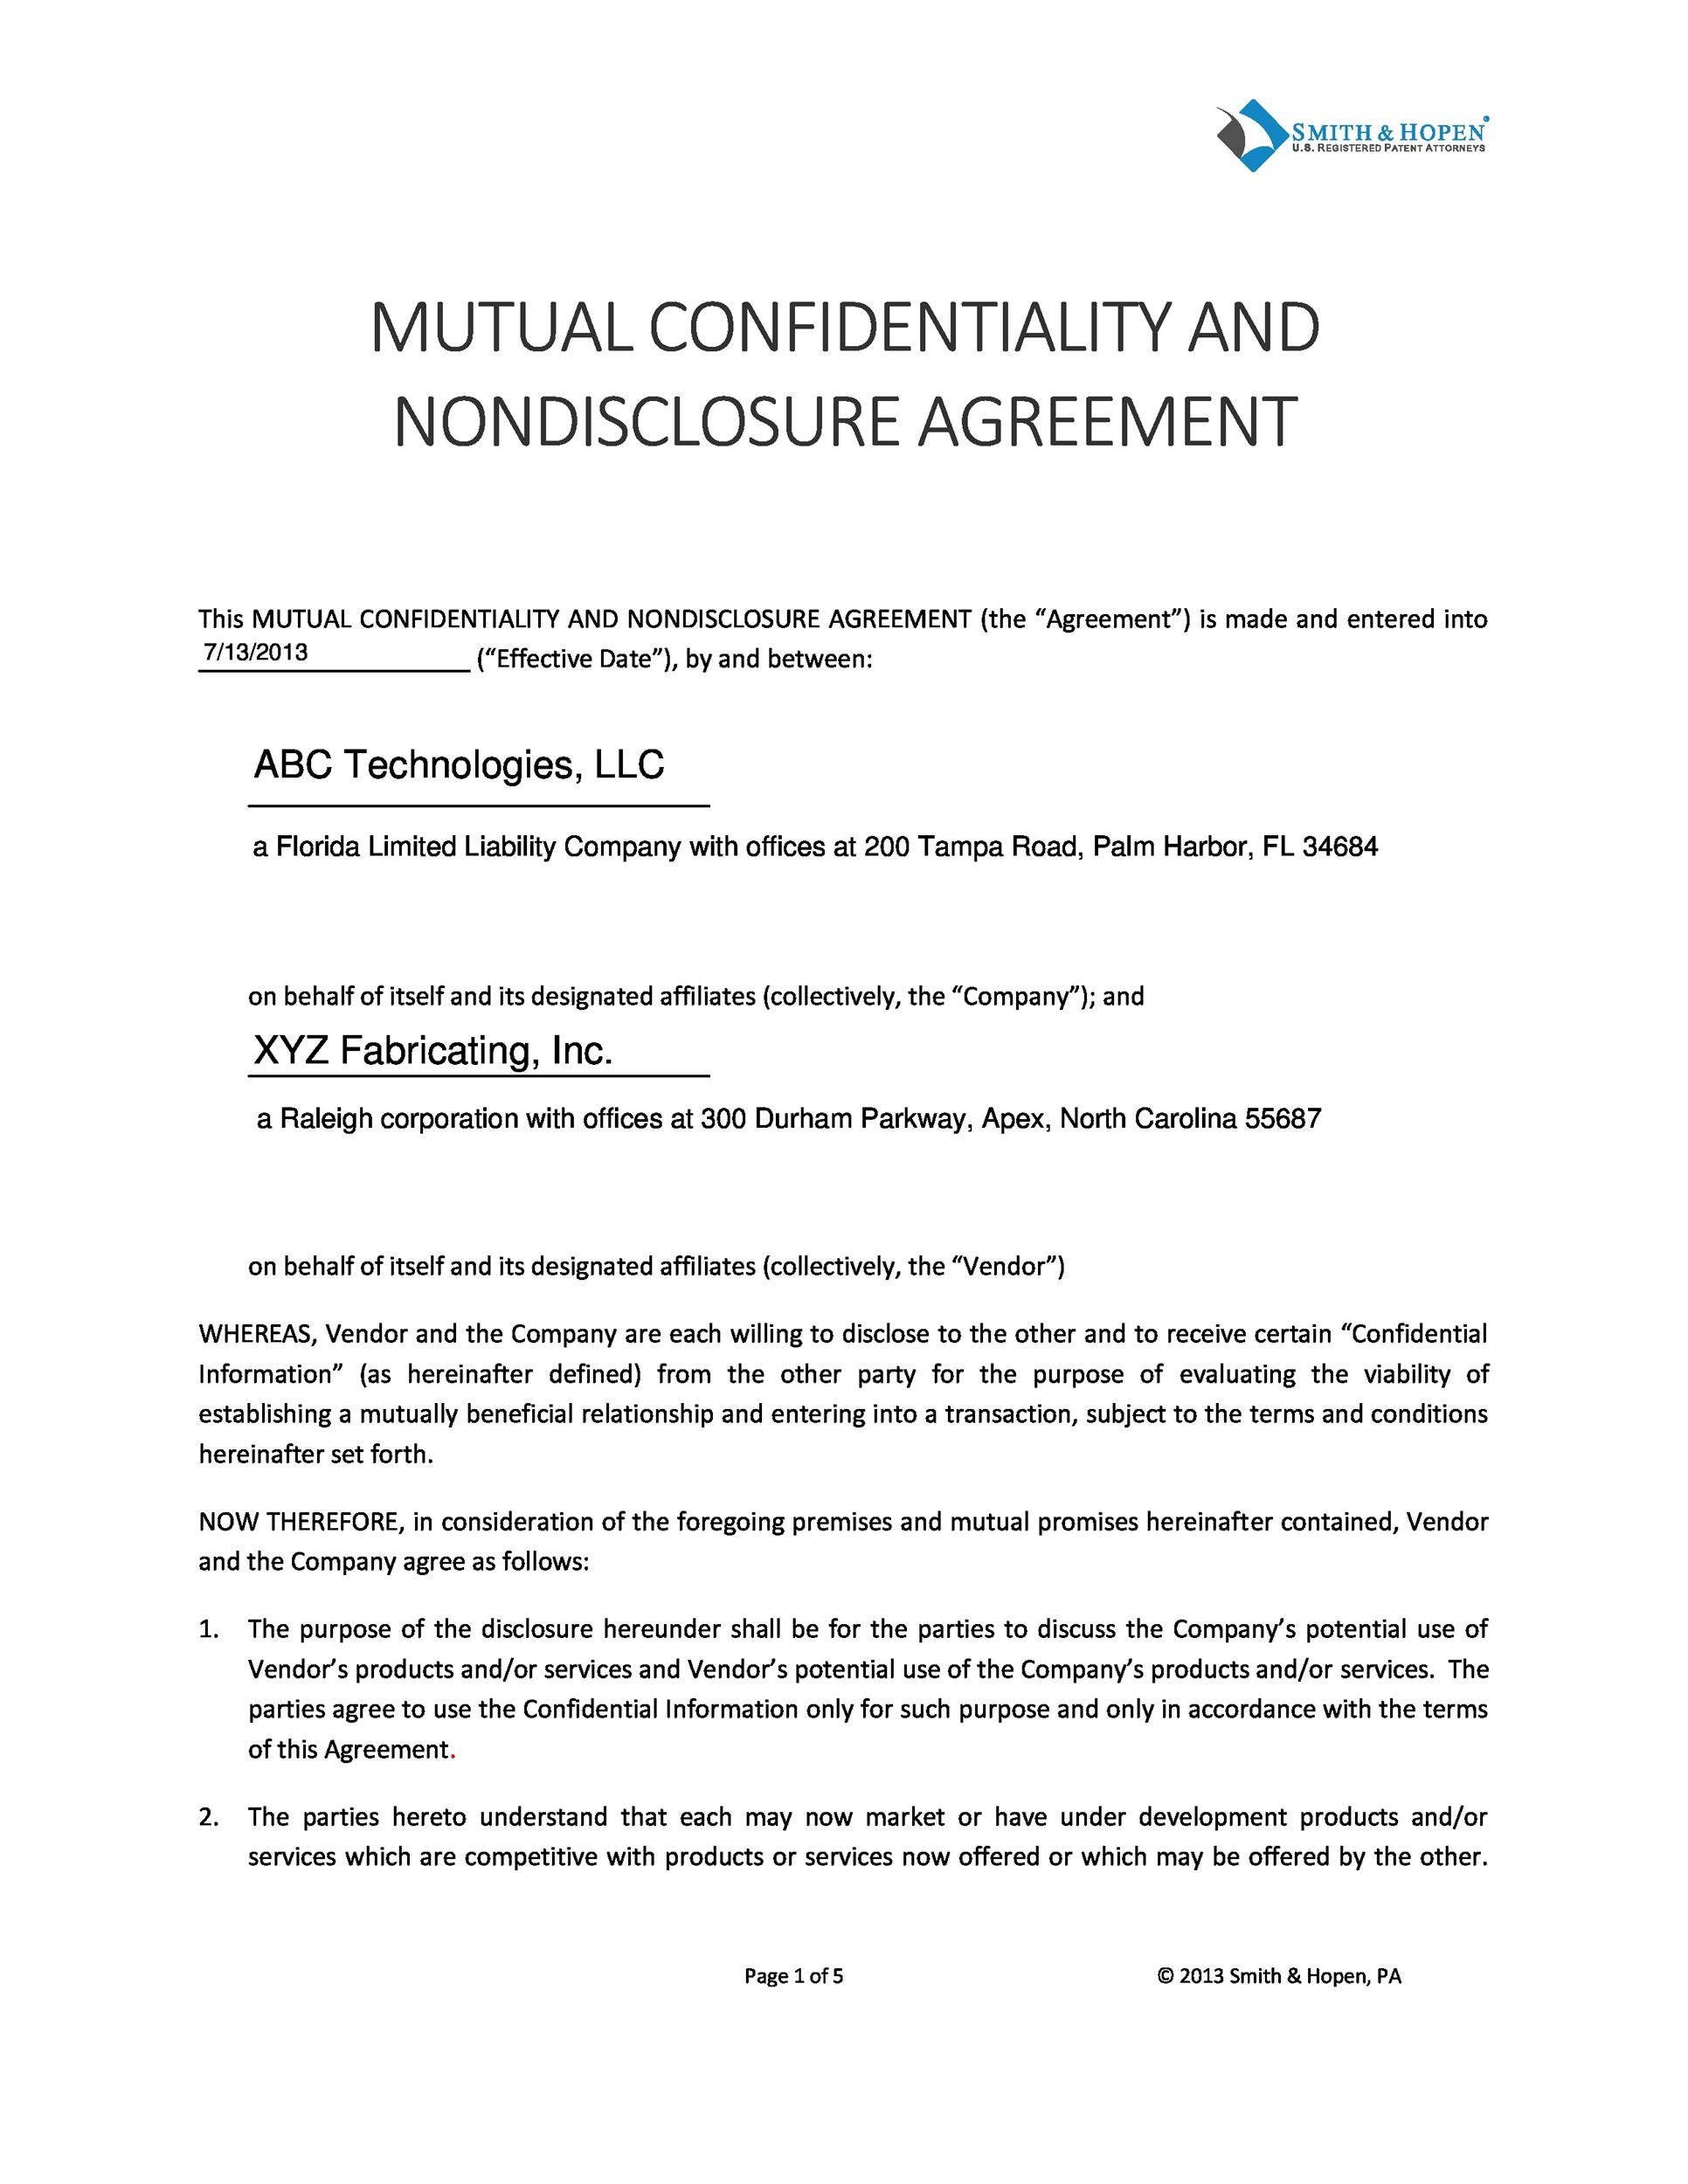 40 Non Disclosure Agreement Templates, Samples  Forms - Template Lab